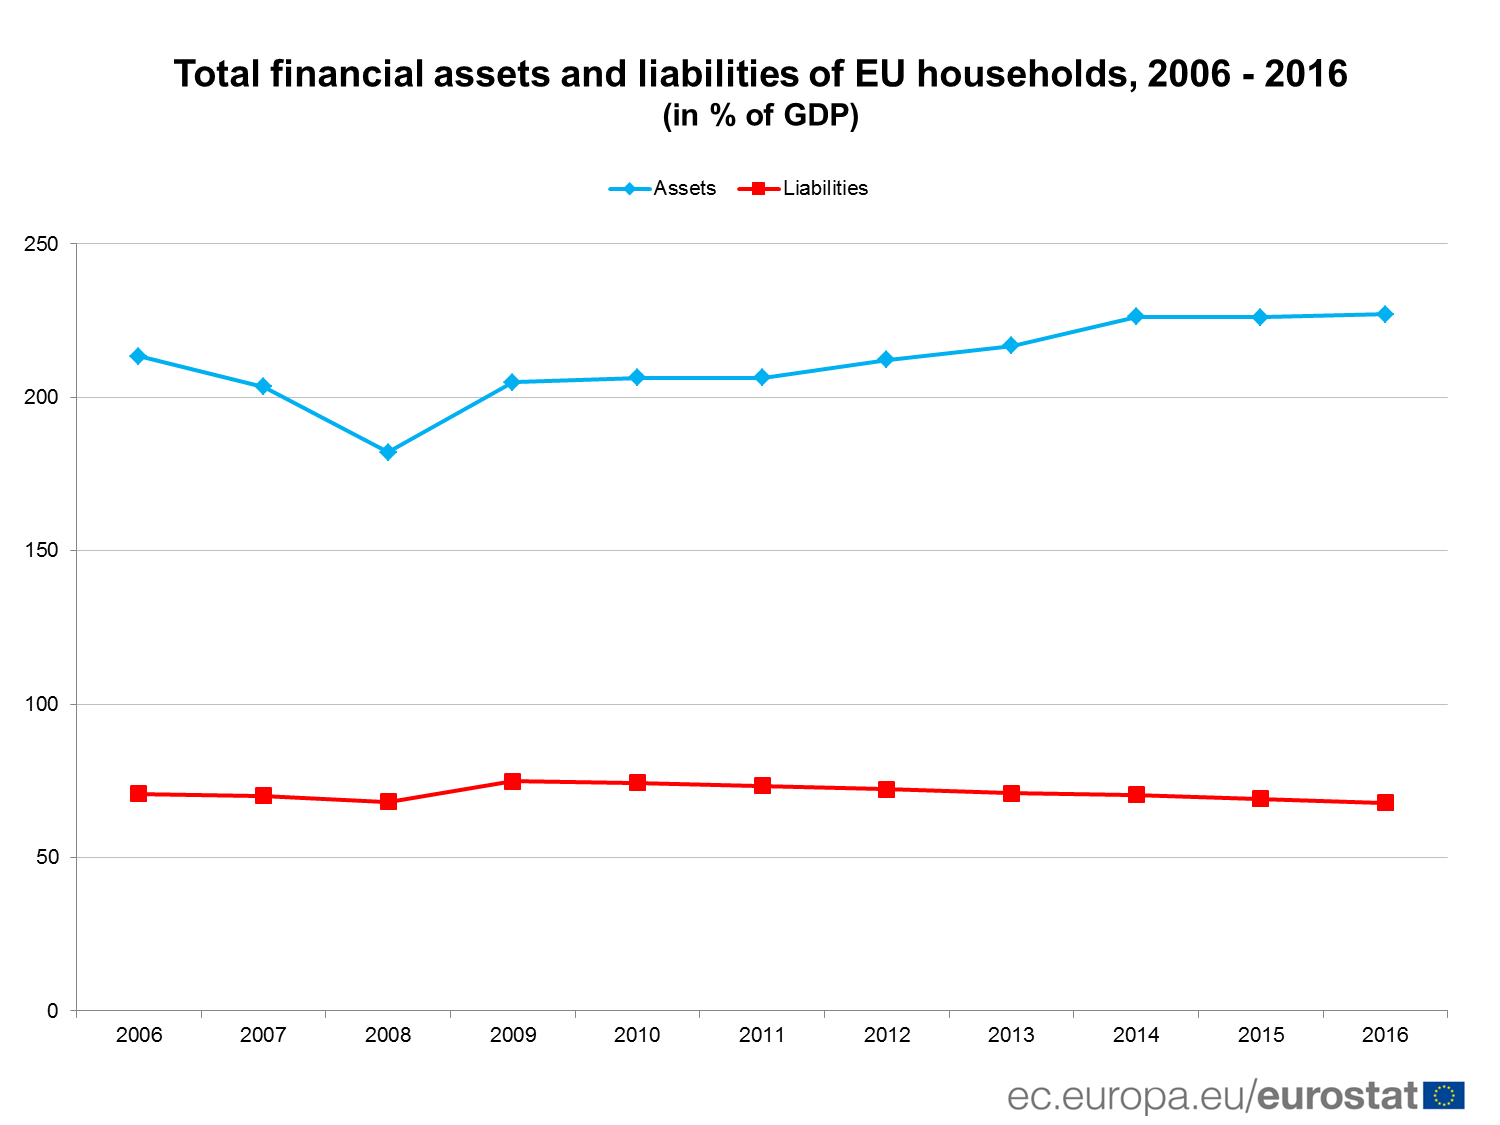 Total financial assets and liabilites of EU households, 2006 - 2016